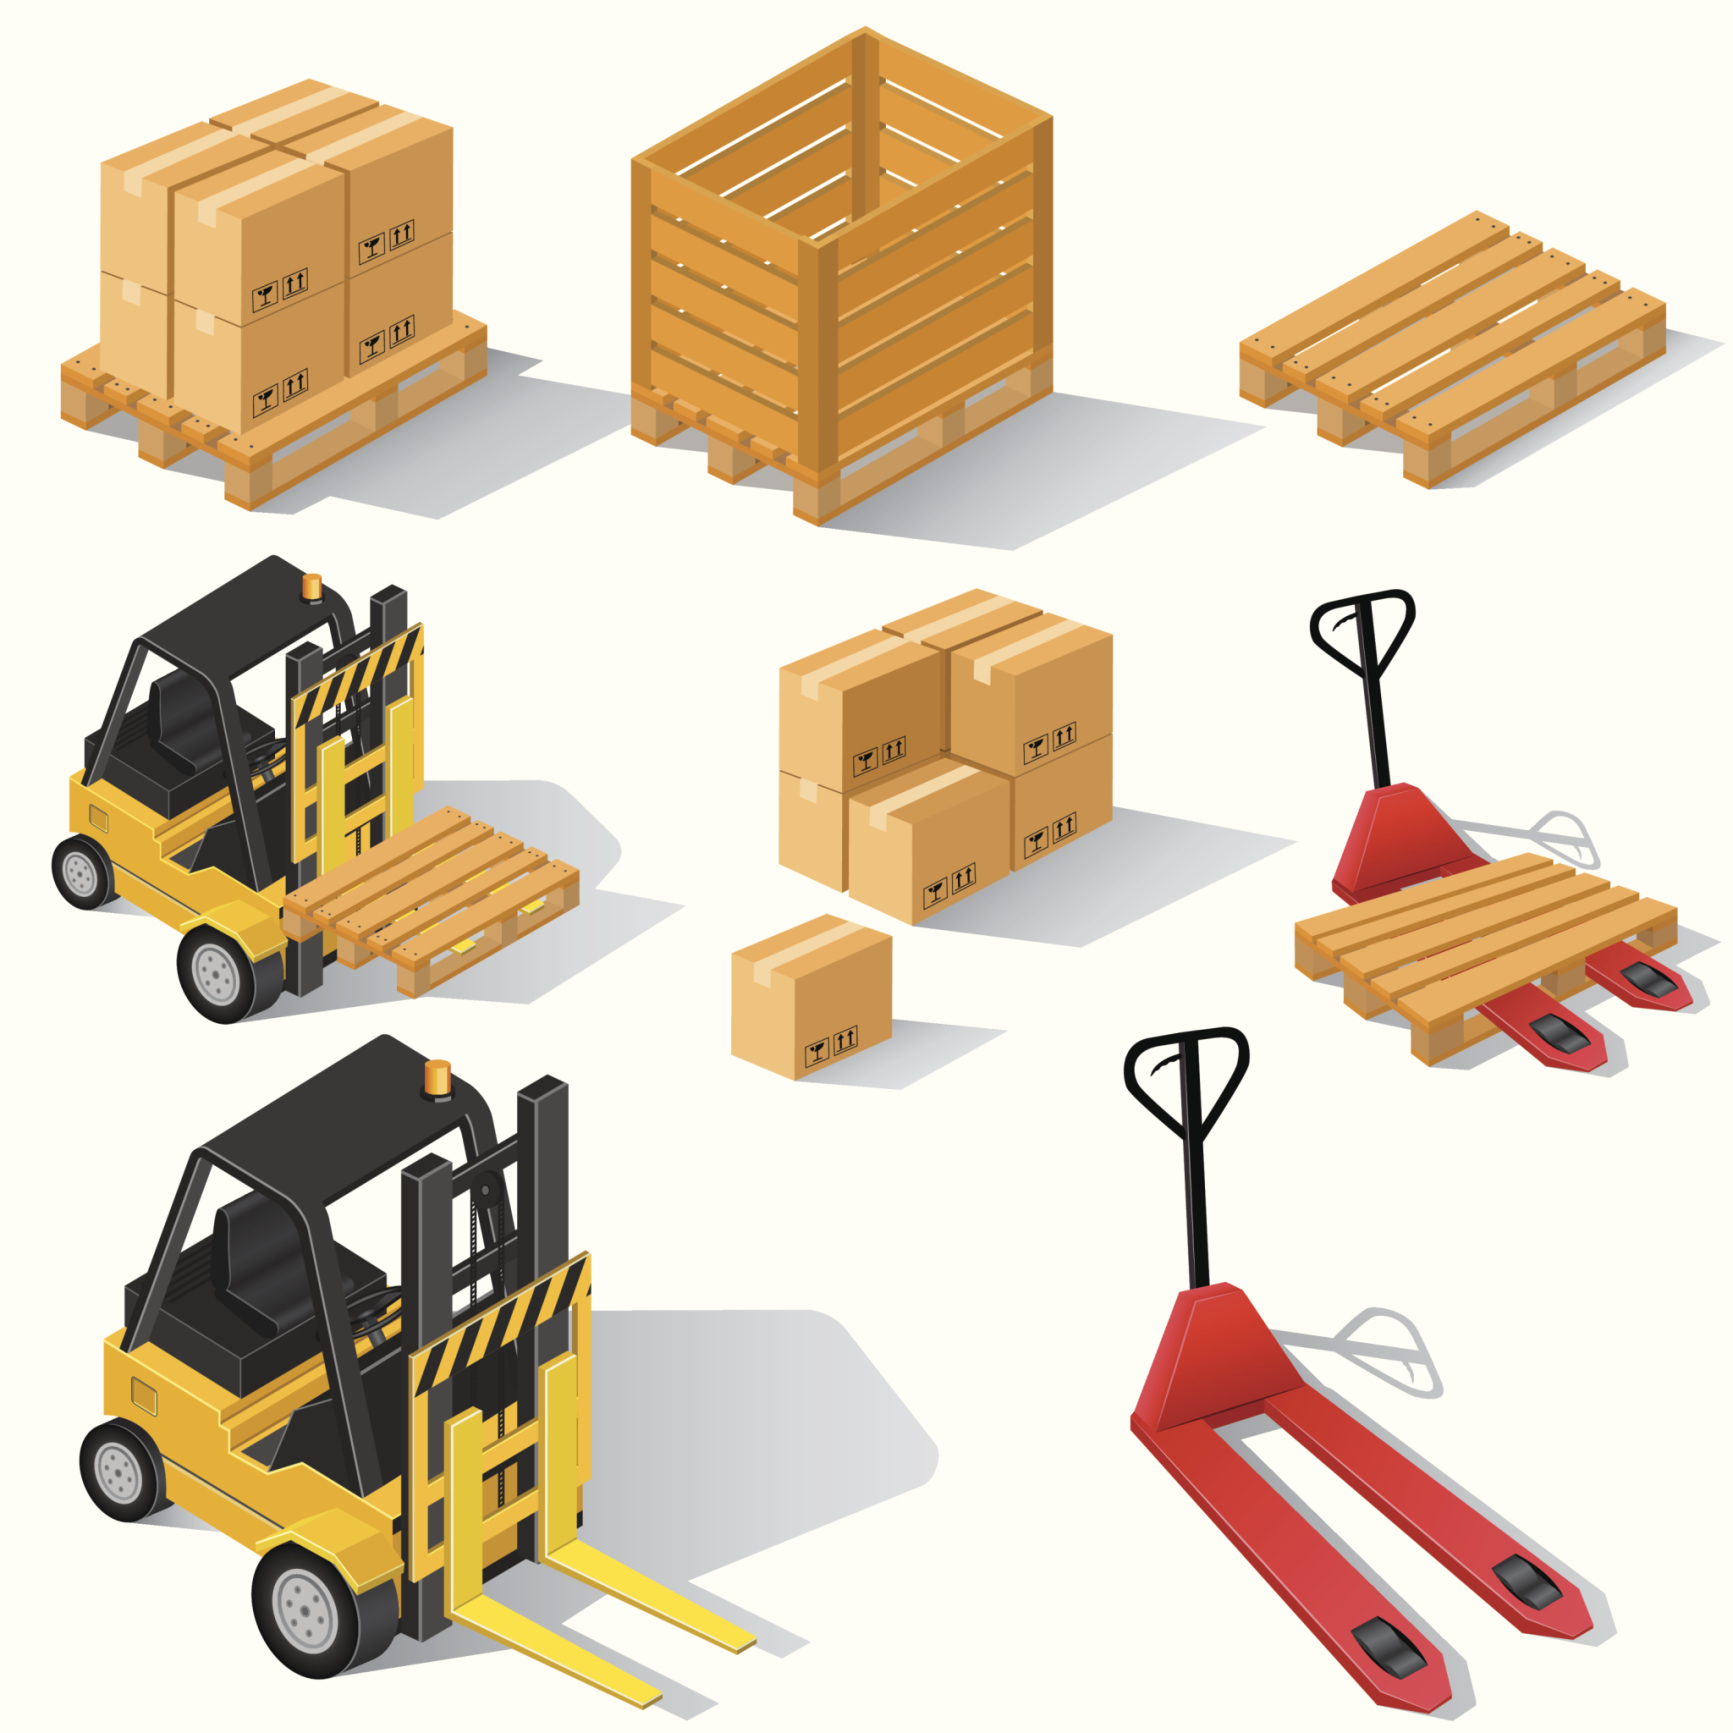 Forklift service r j material handling our experienced forklift service techs get the job done right the first time xflitez Image collections